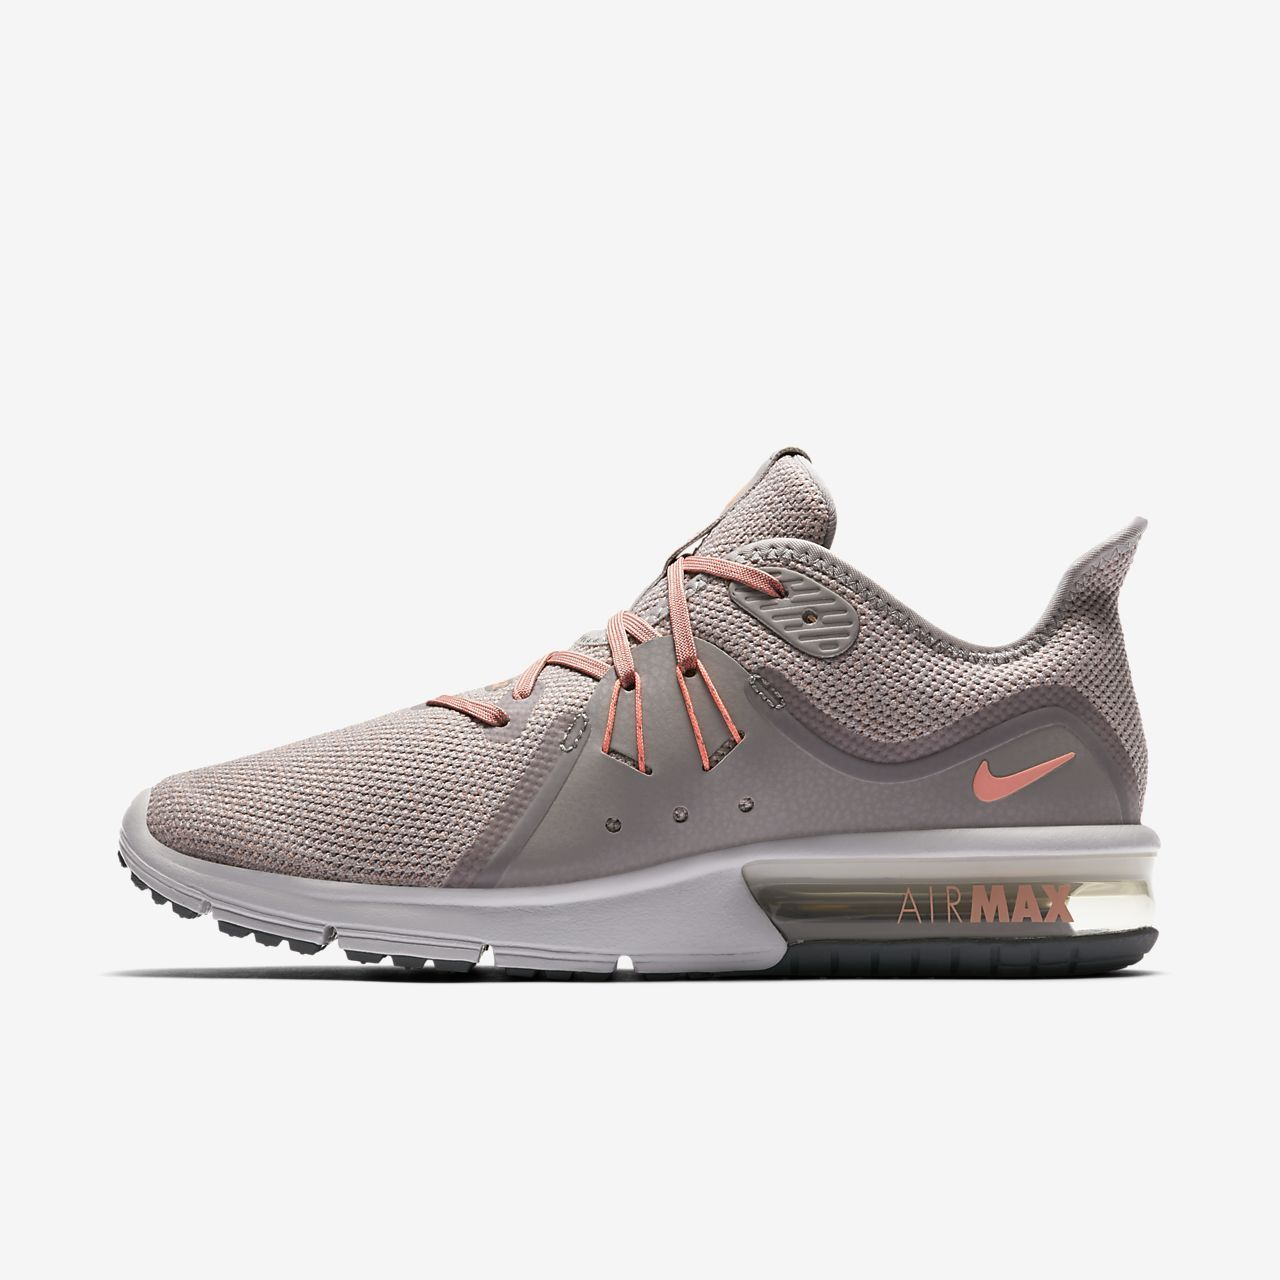 size 40 cceb3 1e8db Nike Air Max Sequent 3 Women s Running Shoe